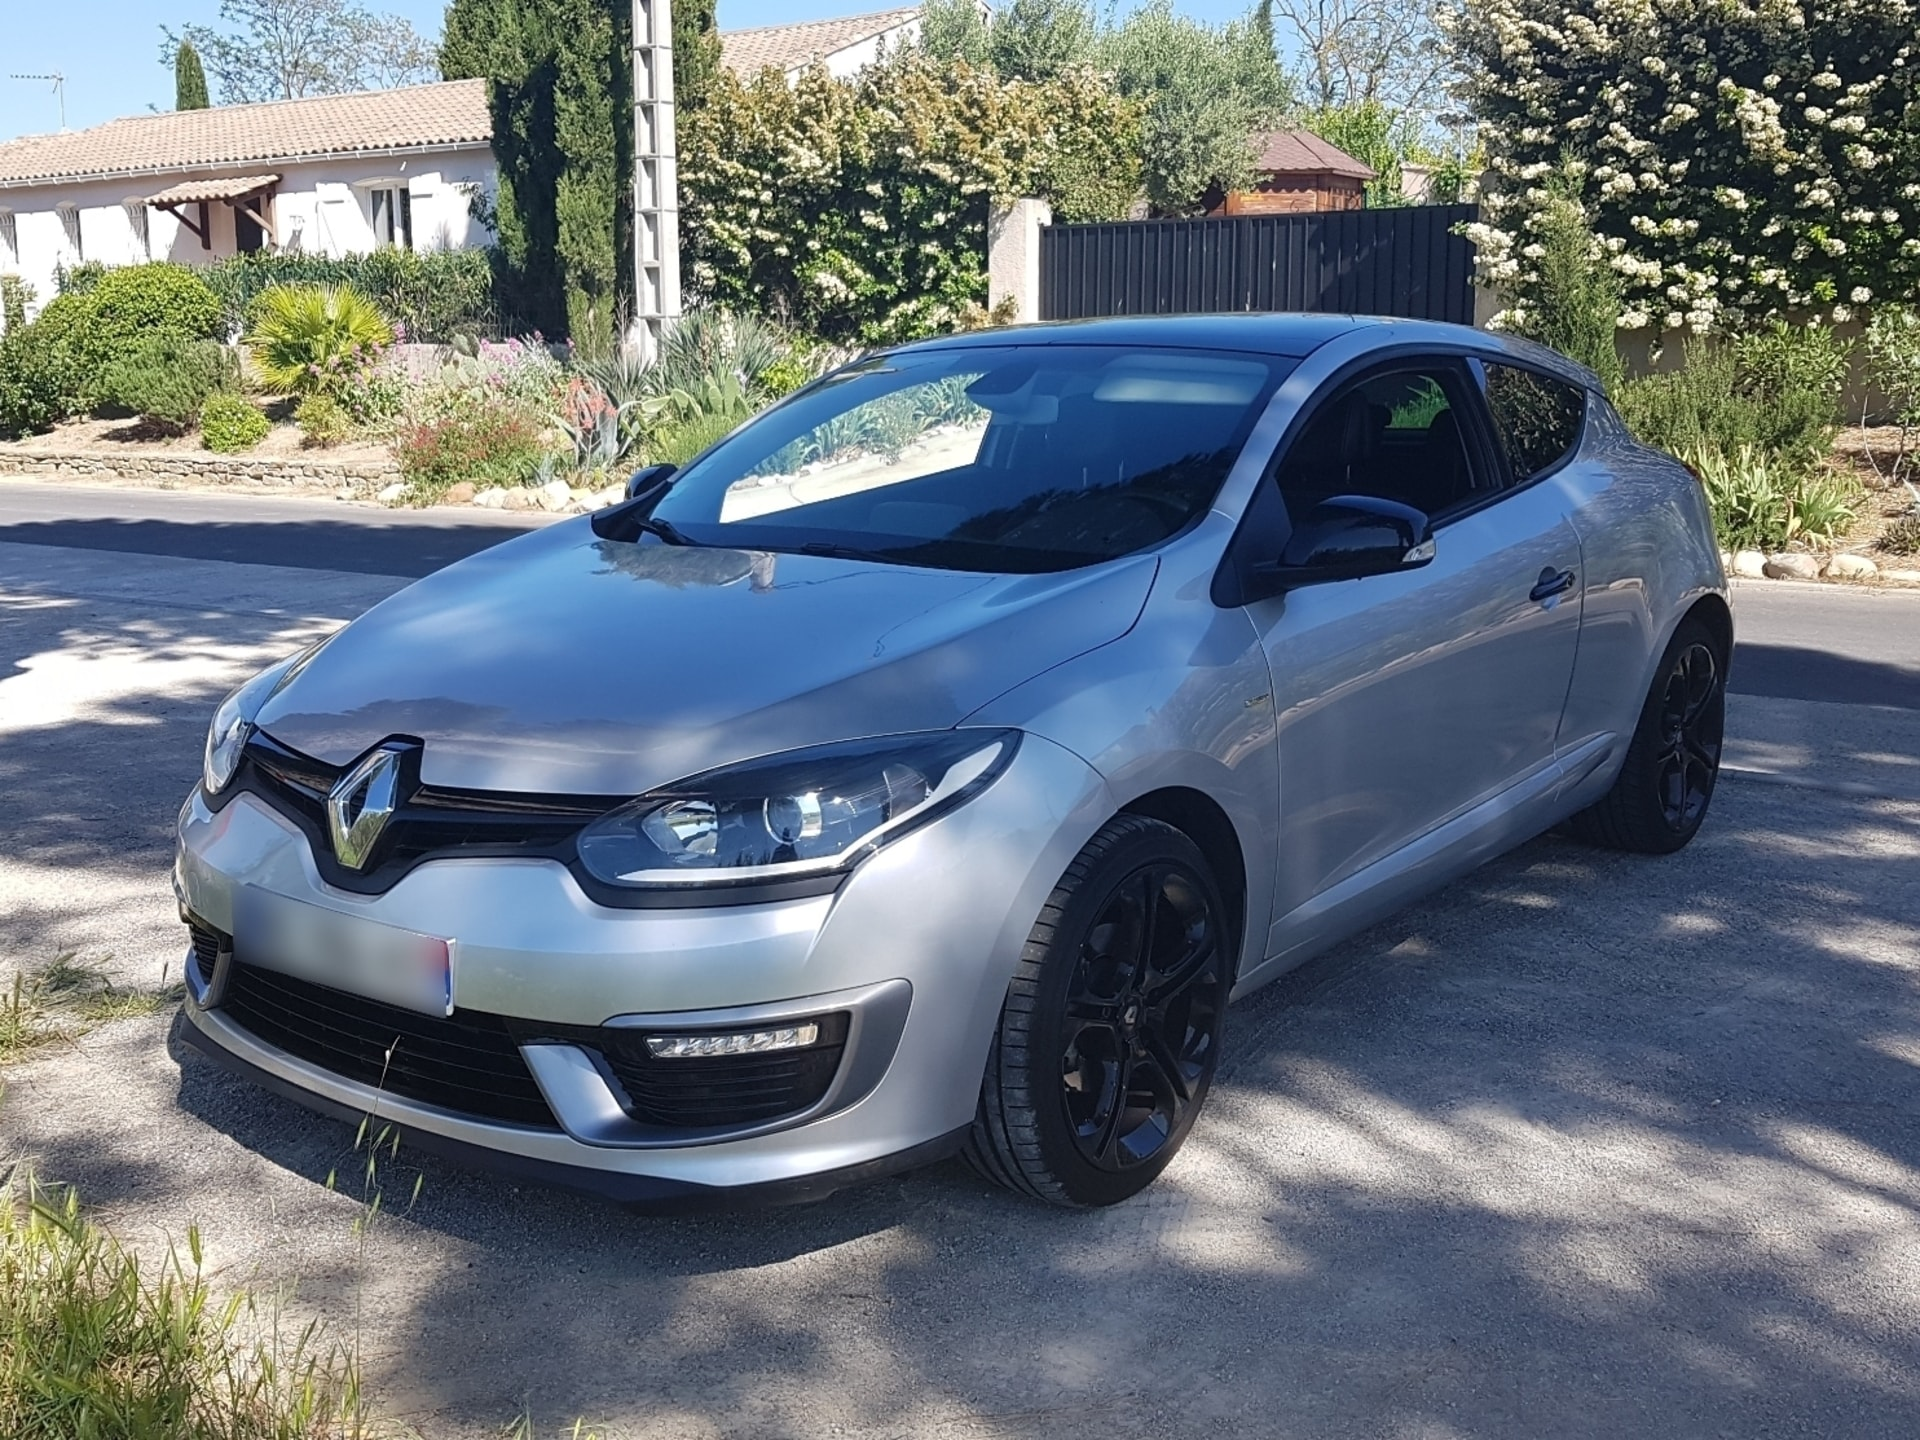 RENAULT MEGANE COUPE 1.2 TCE 130 ENERGY ULTIMATE - Carventura